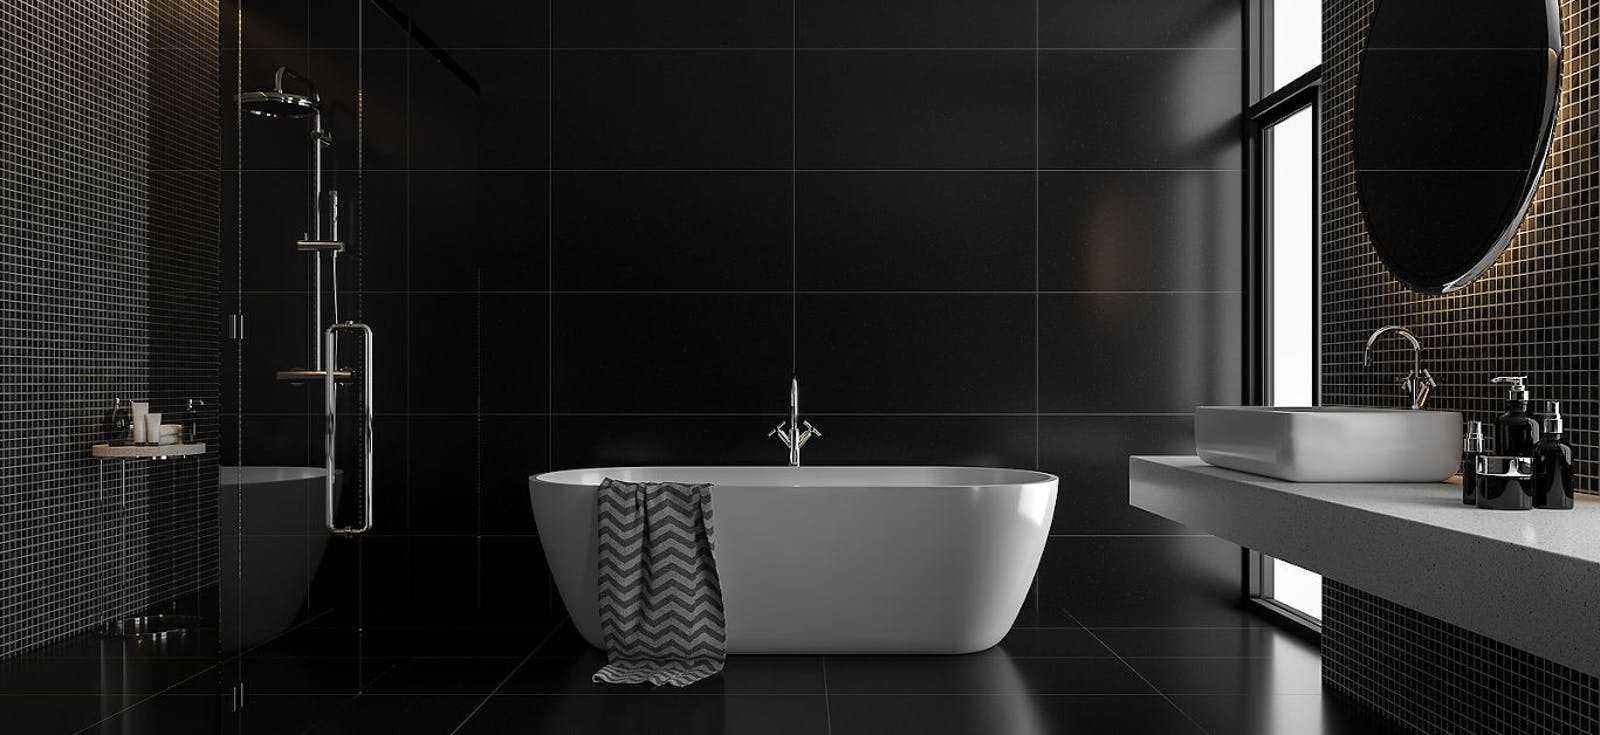 Black bathroom with bathtub